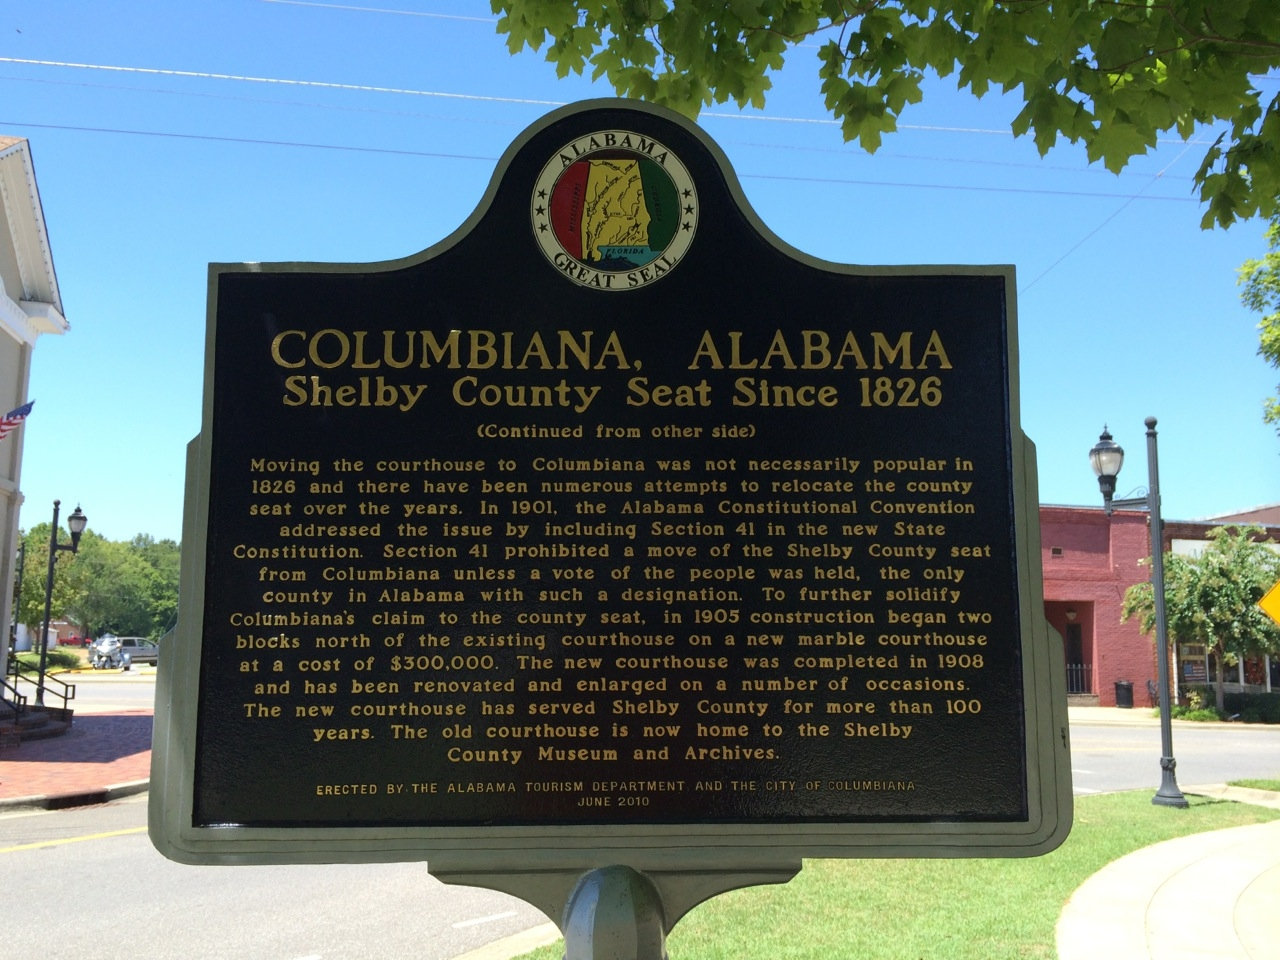 Columbiana, Alabama Marker (side 2)